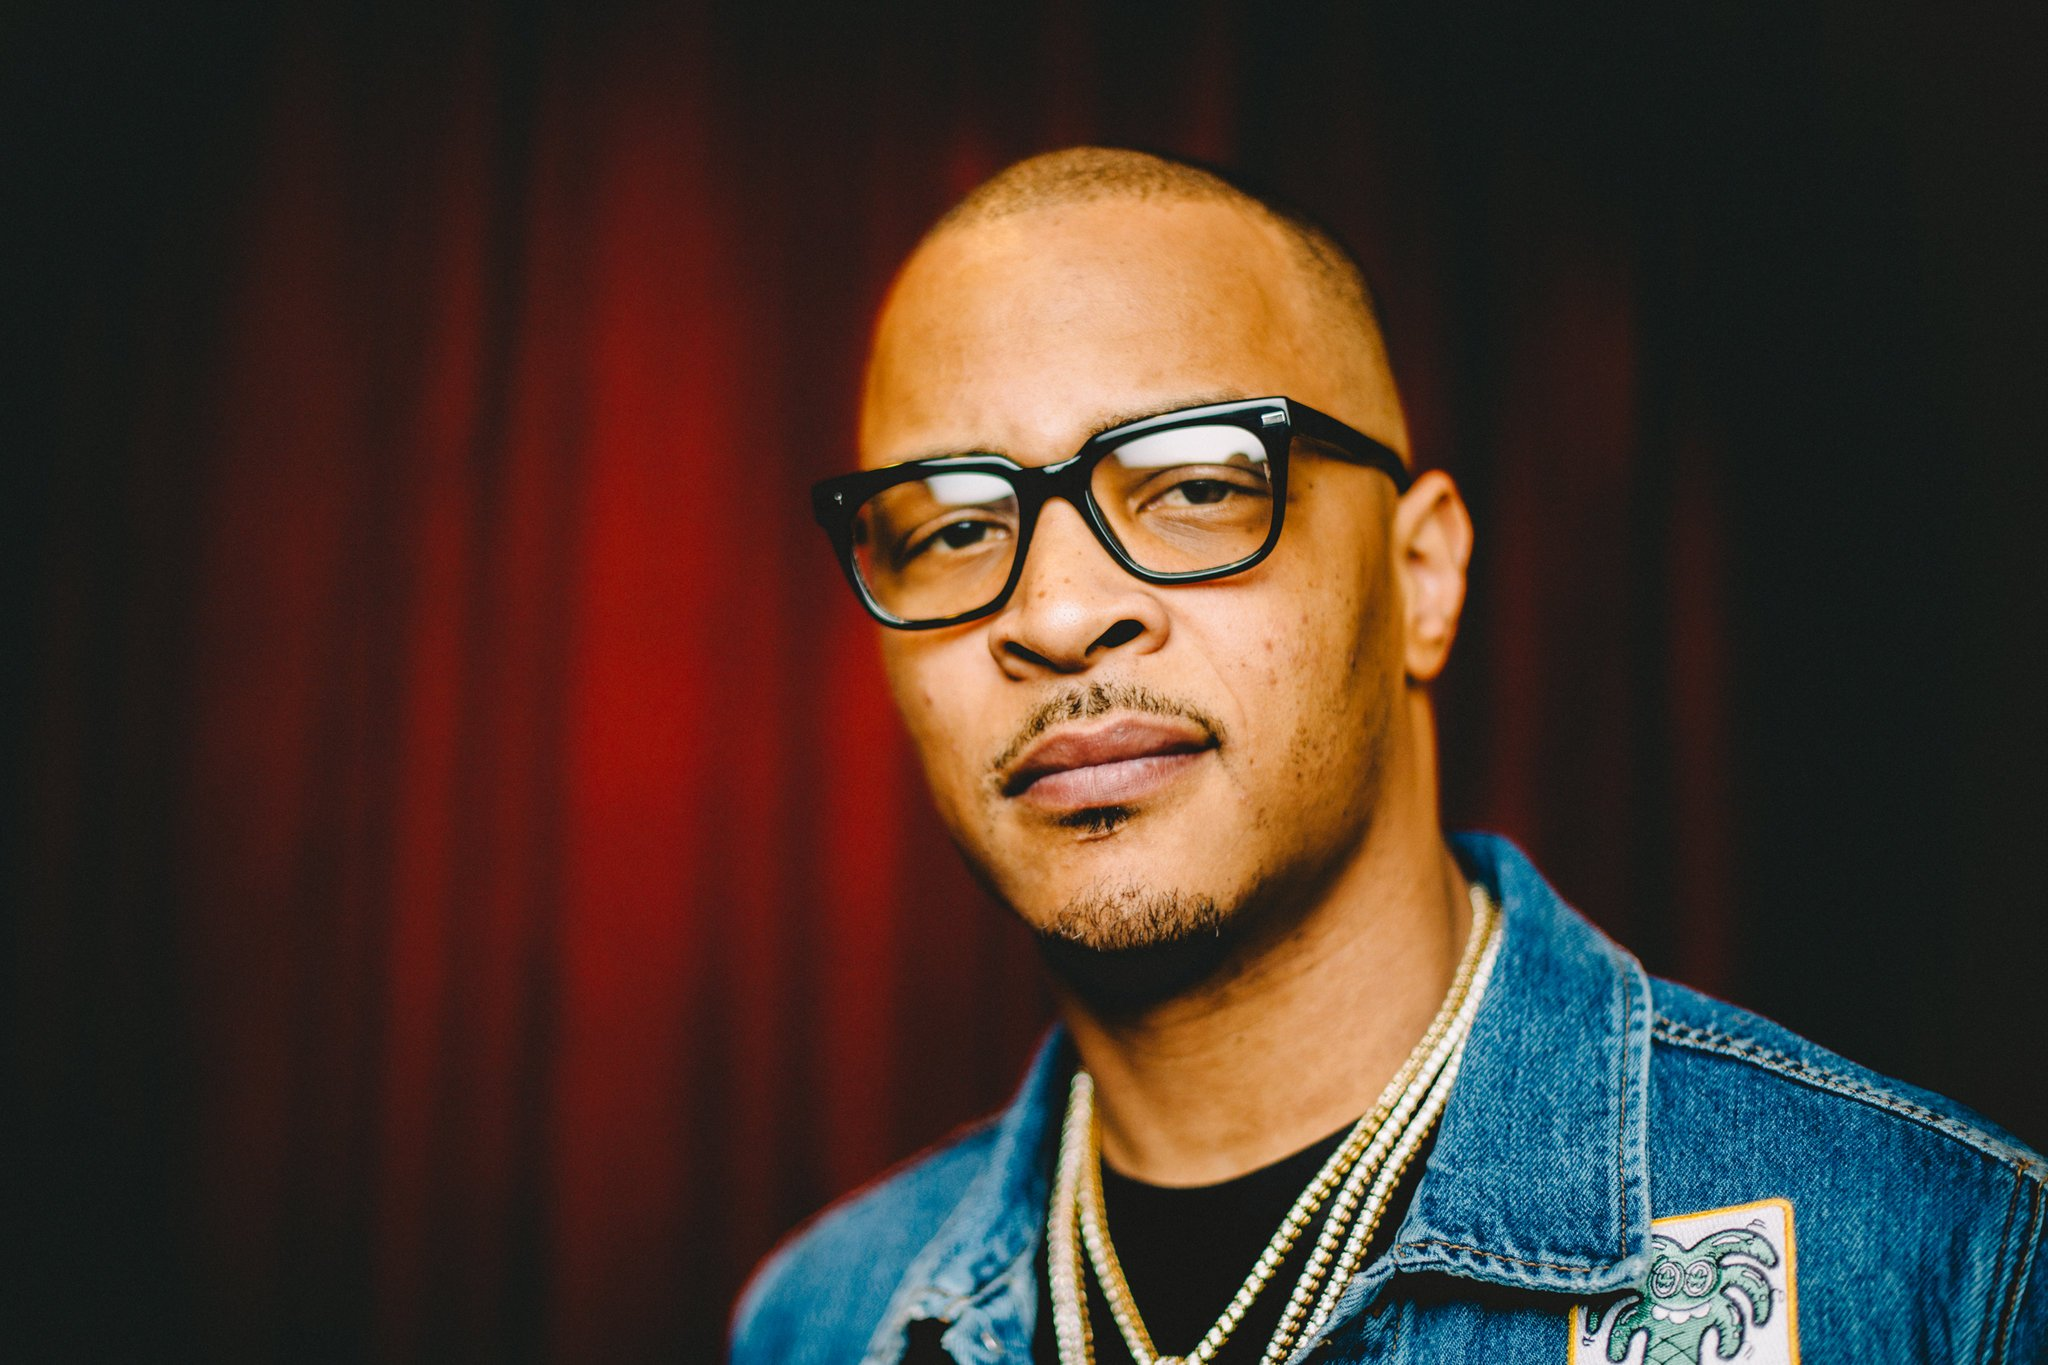 T.I. Praises A Rap Legend – See The Message He Shared